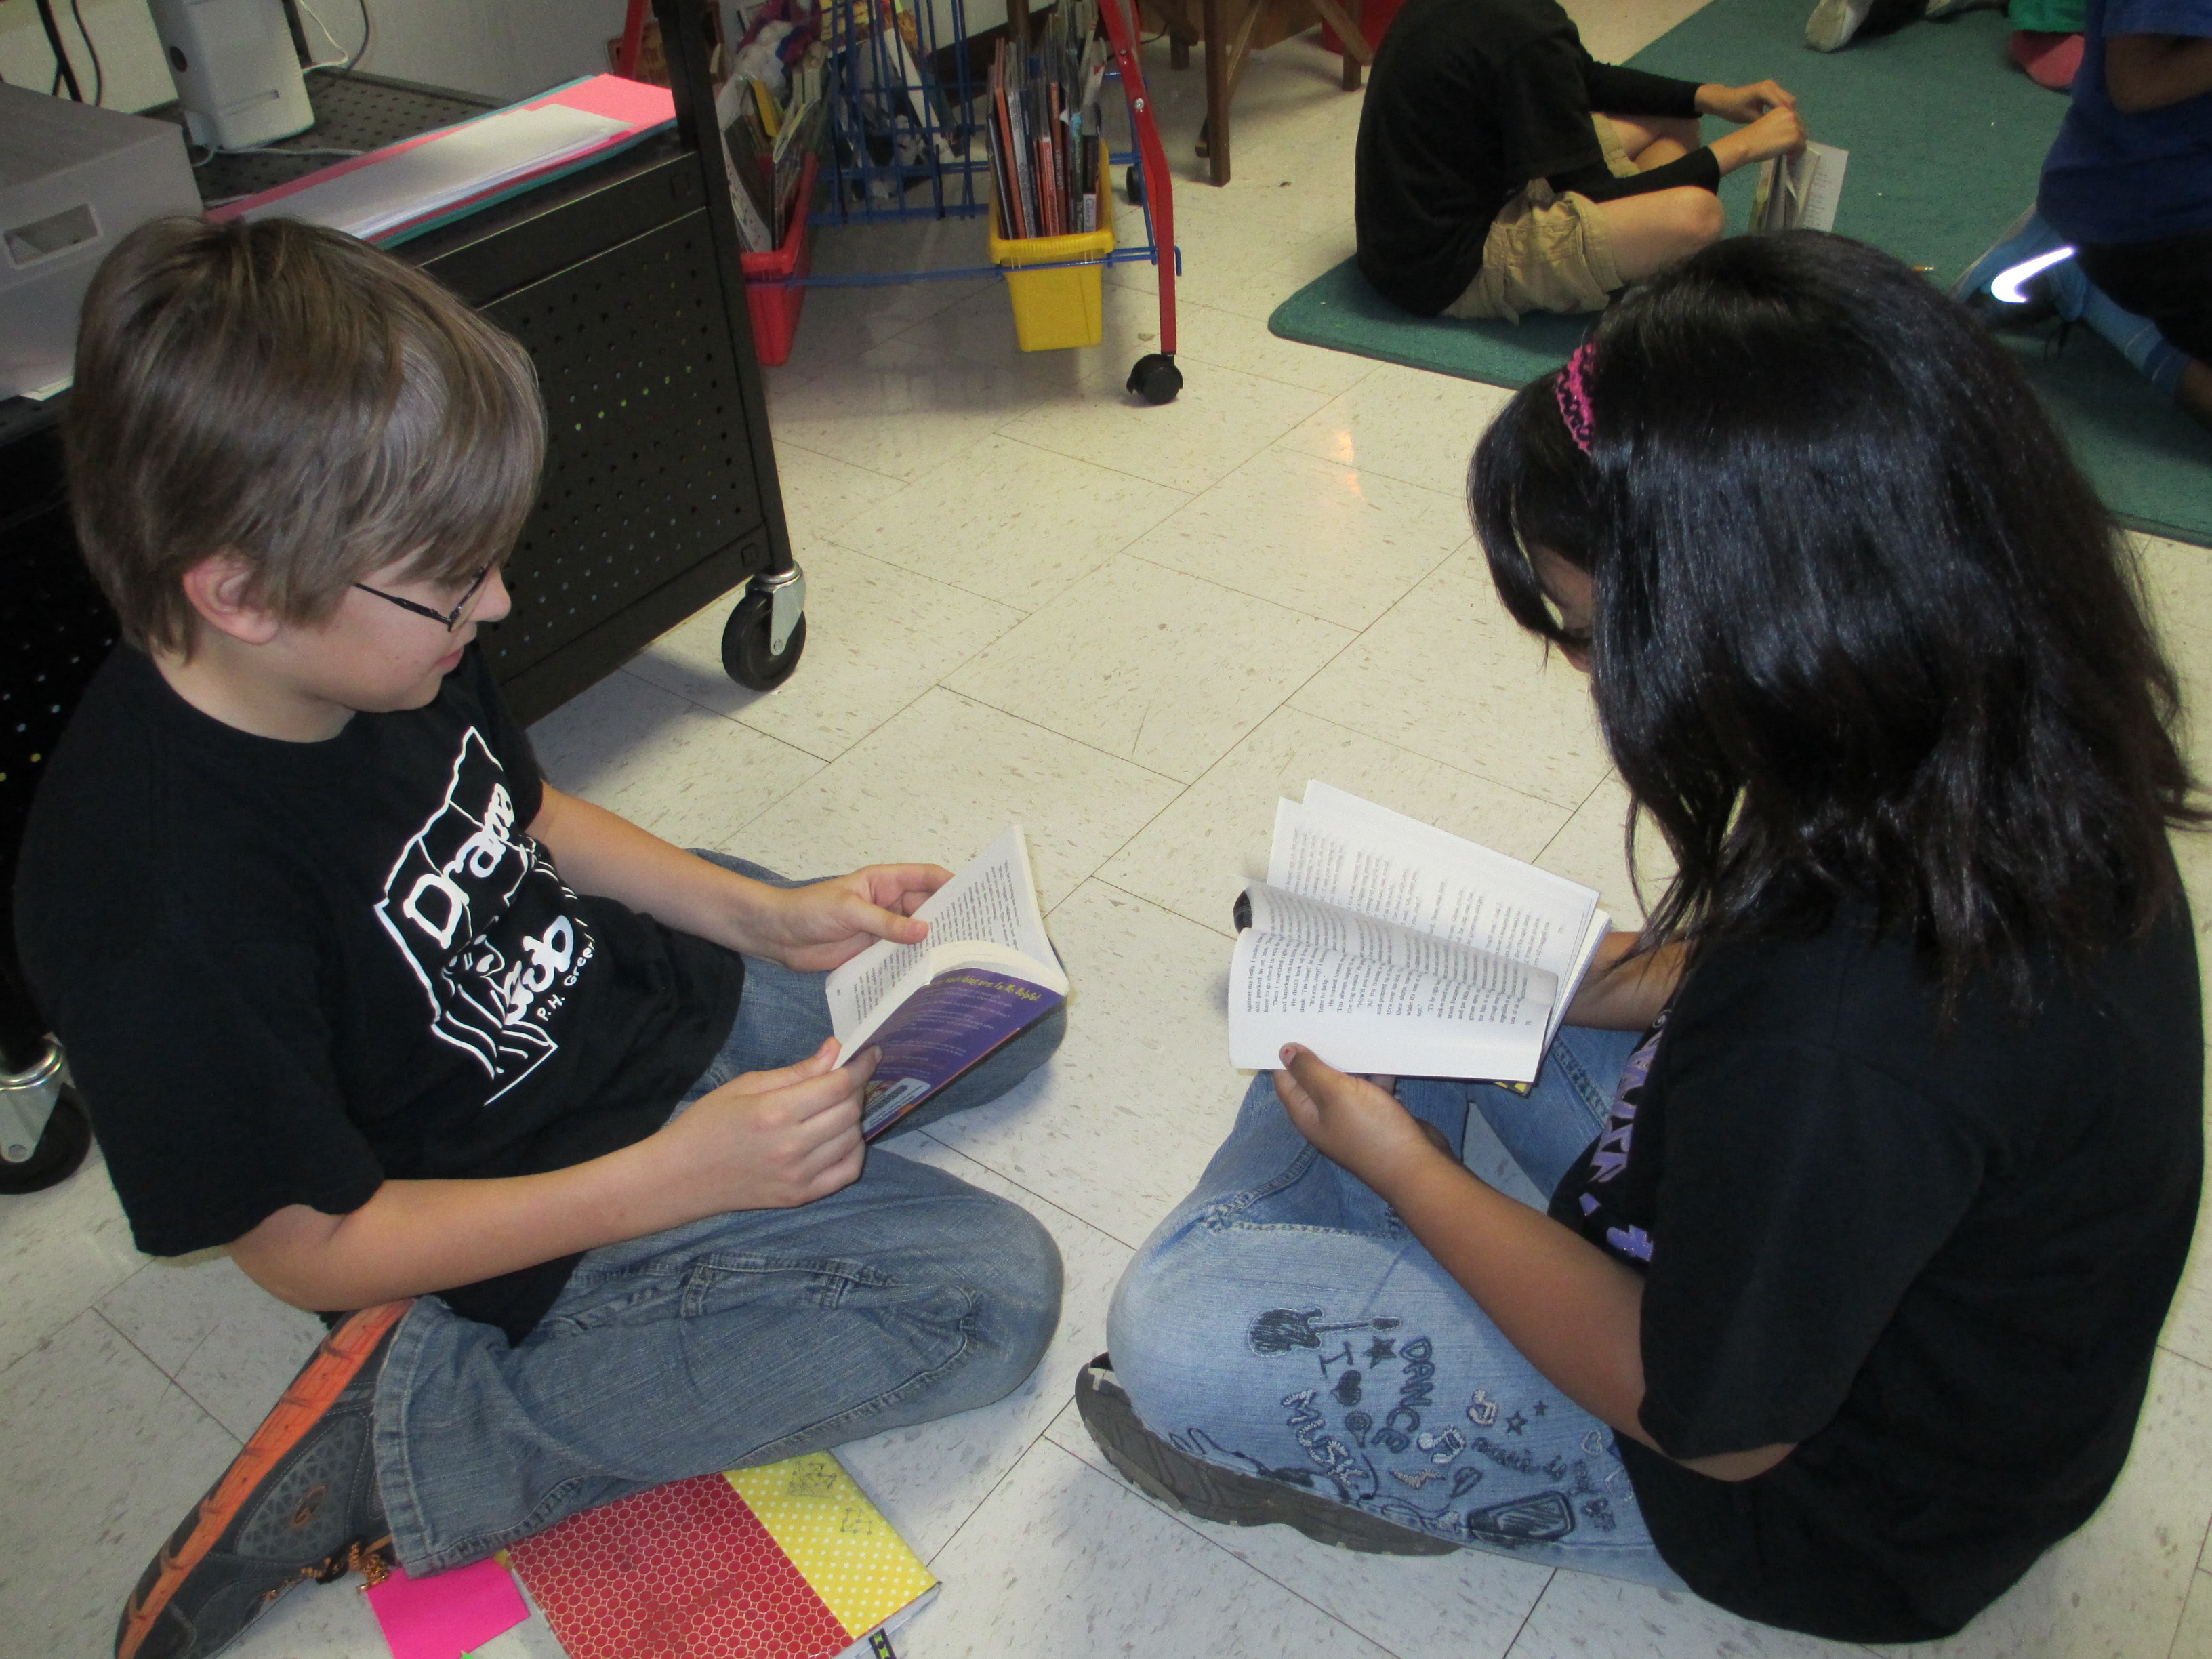 Students working in book club